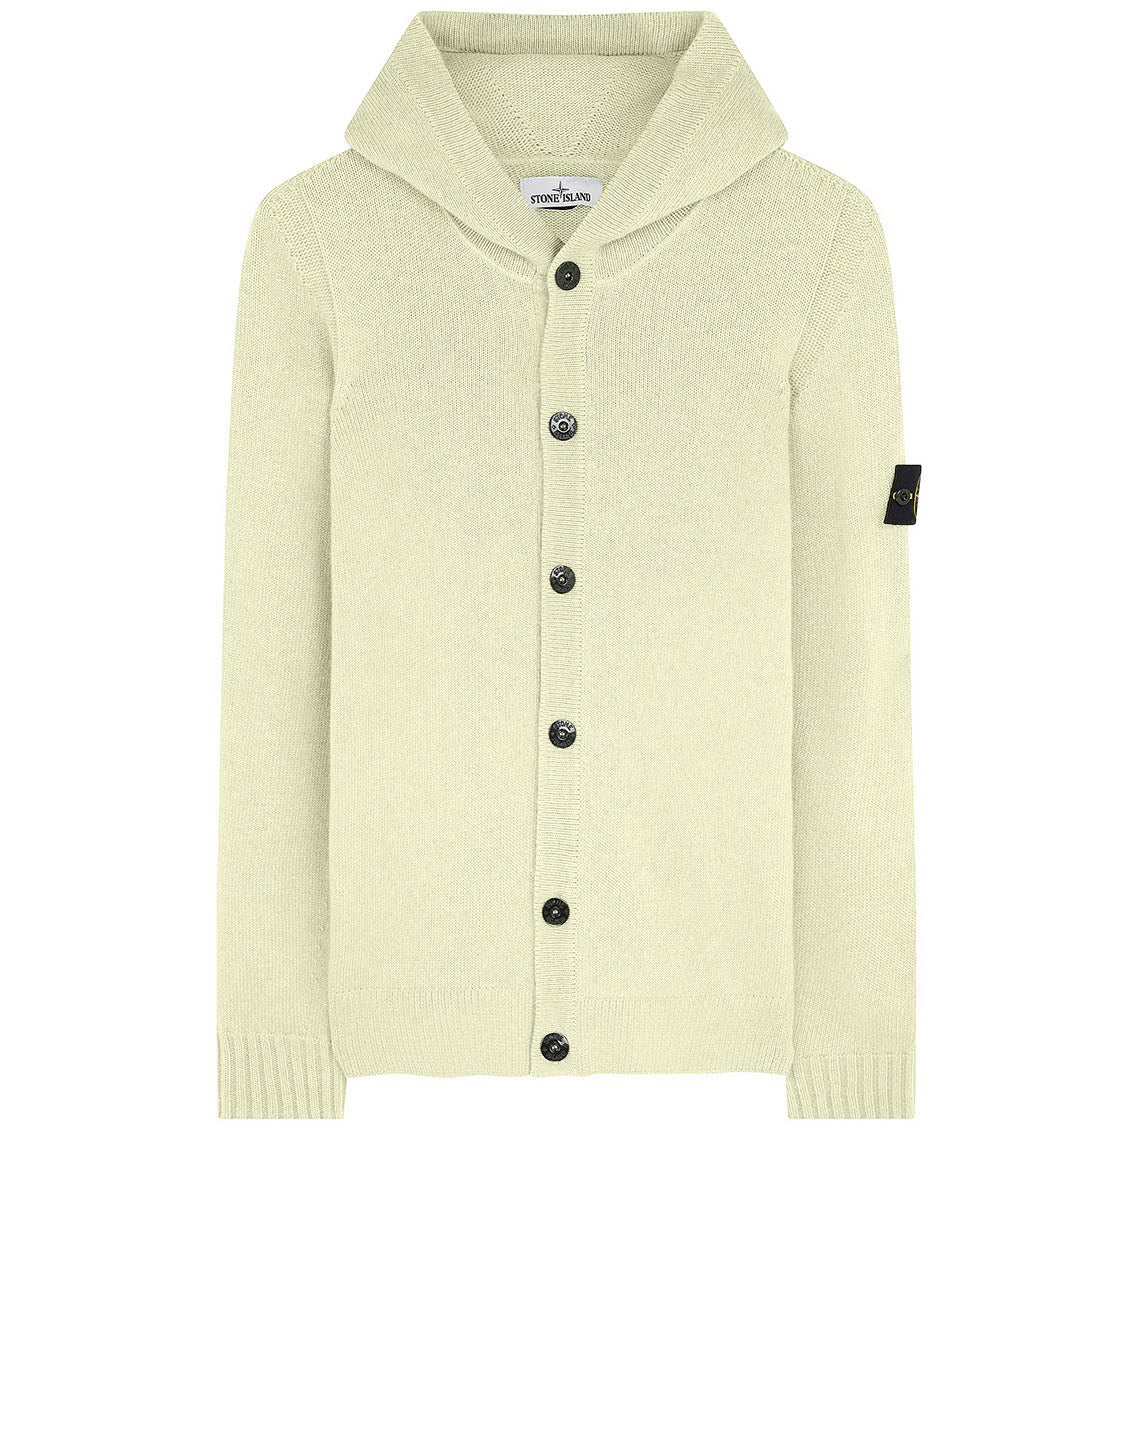 506A3 Hooded Knitted Cardigan in Butter